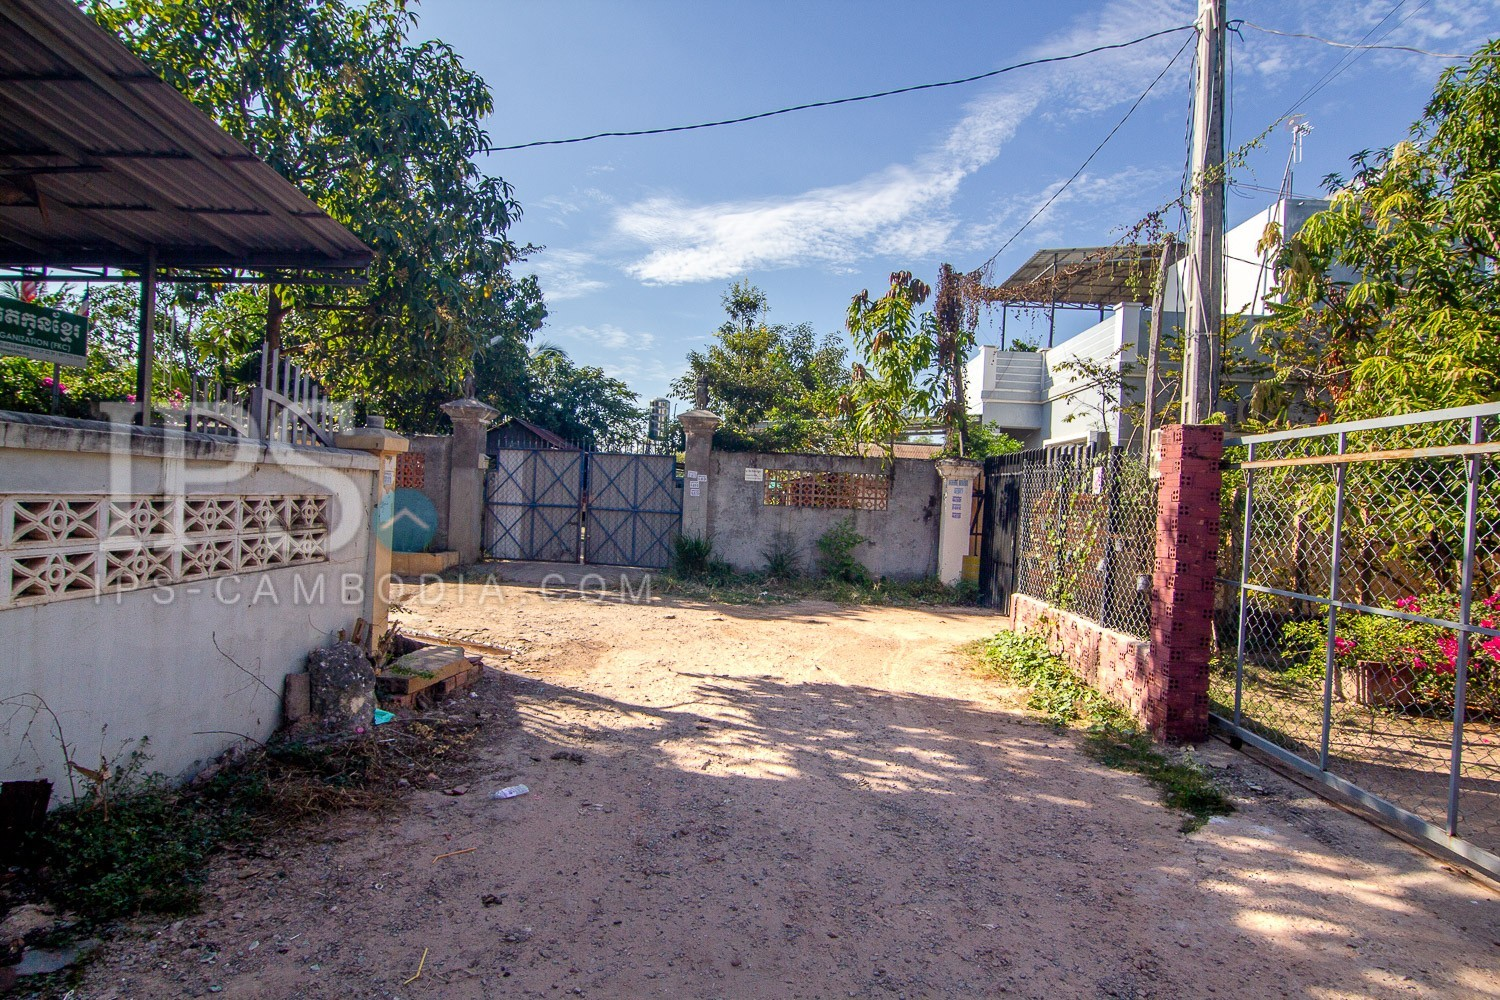 500 Sqm House And Lot For Sale - Sra Ngae, Siem Reap